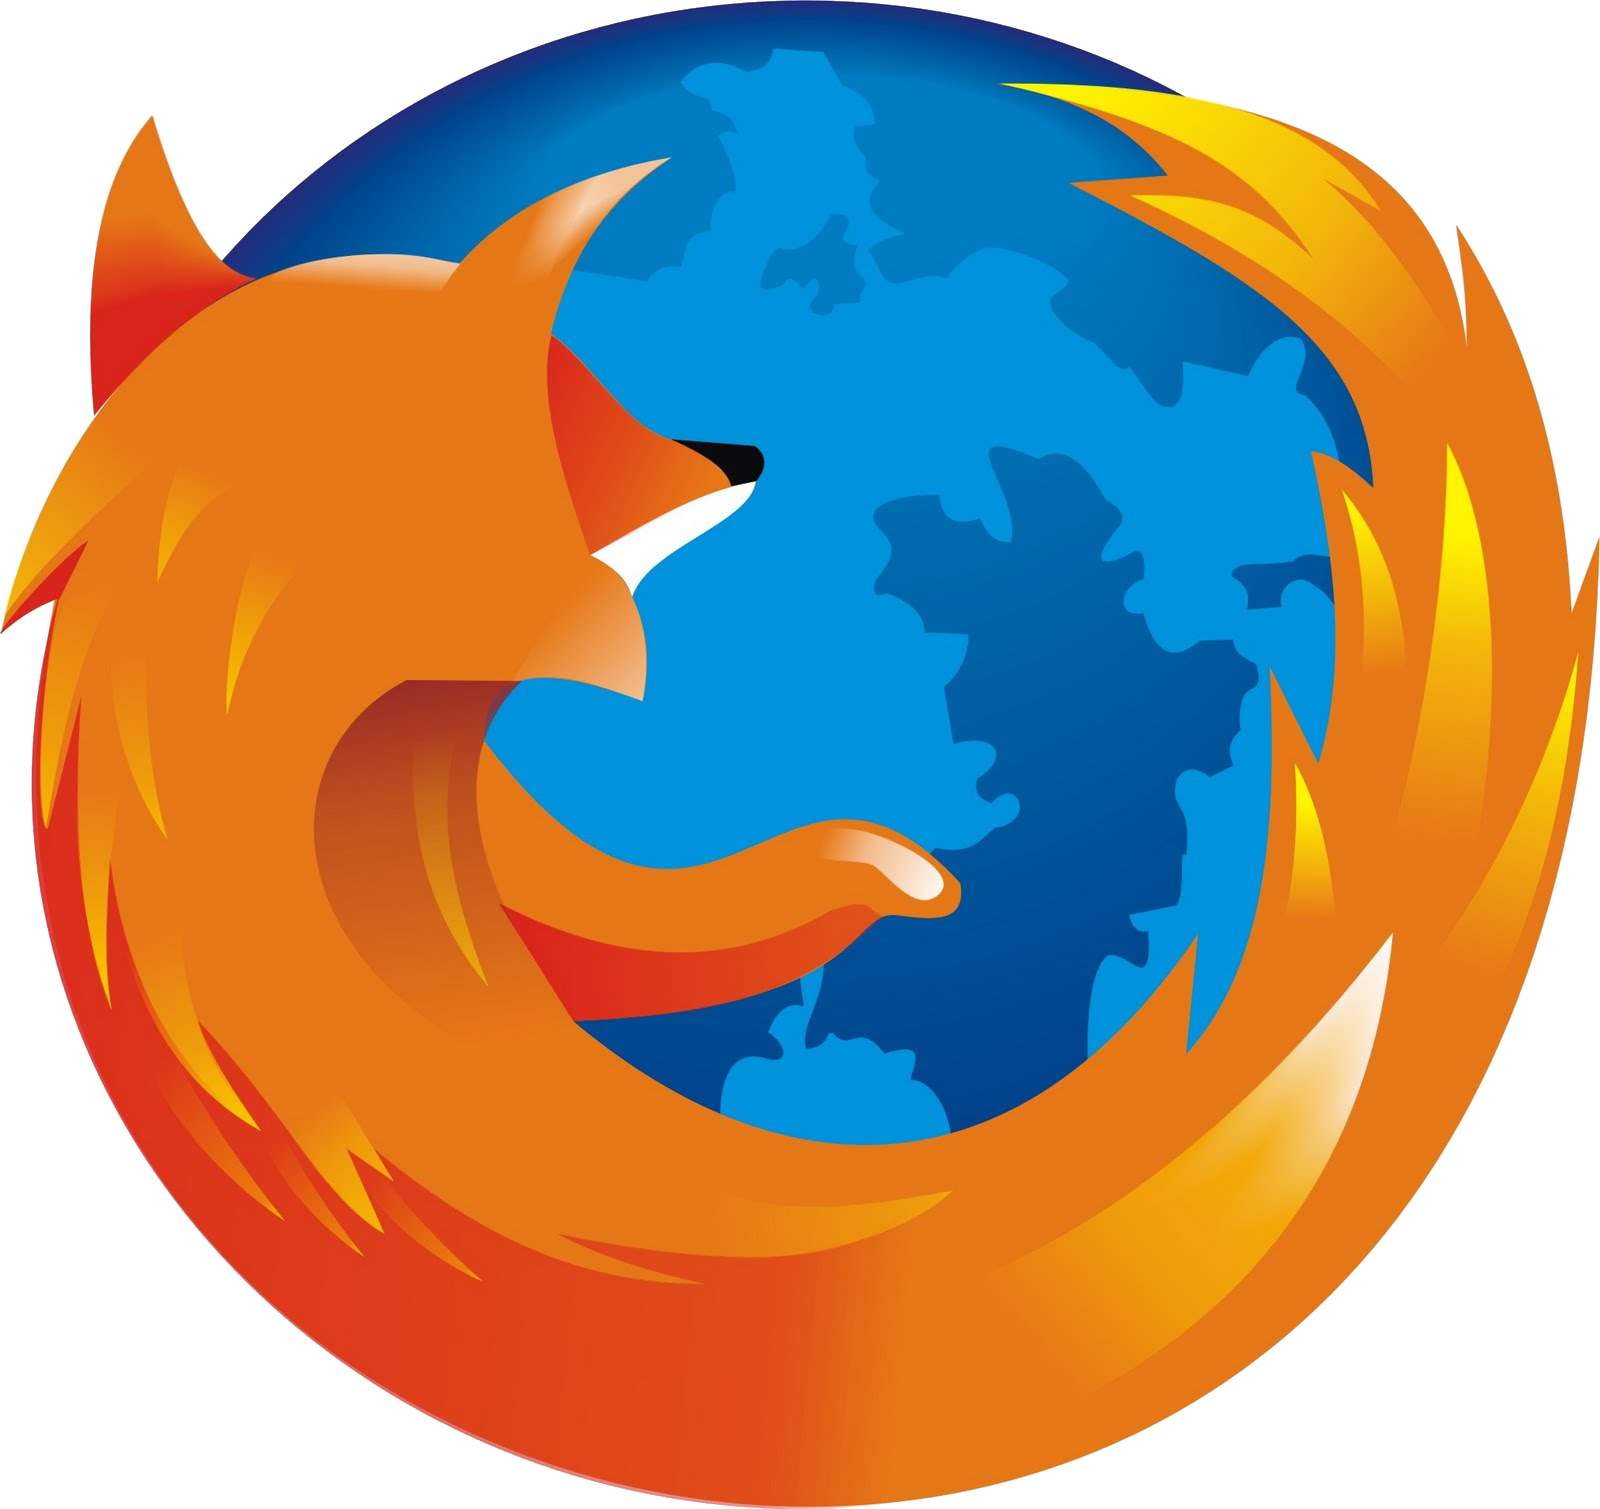 Firefox clipart graphic download Firefox PNG images free download graphic download